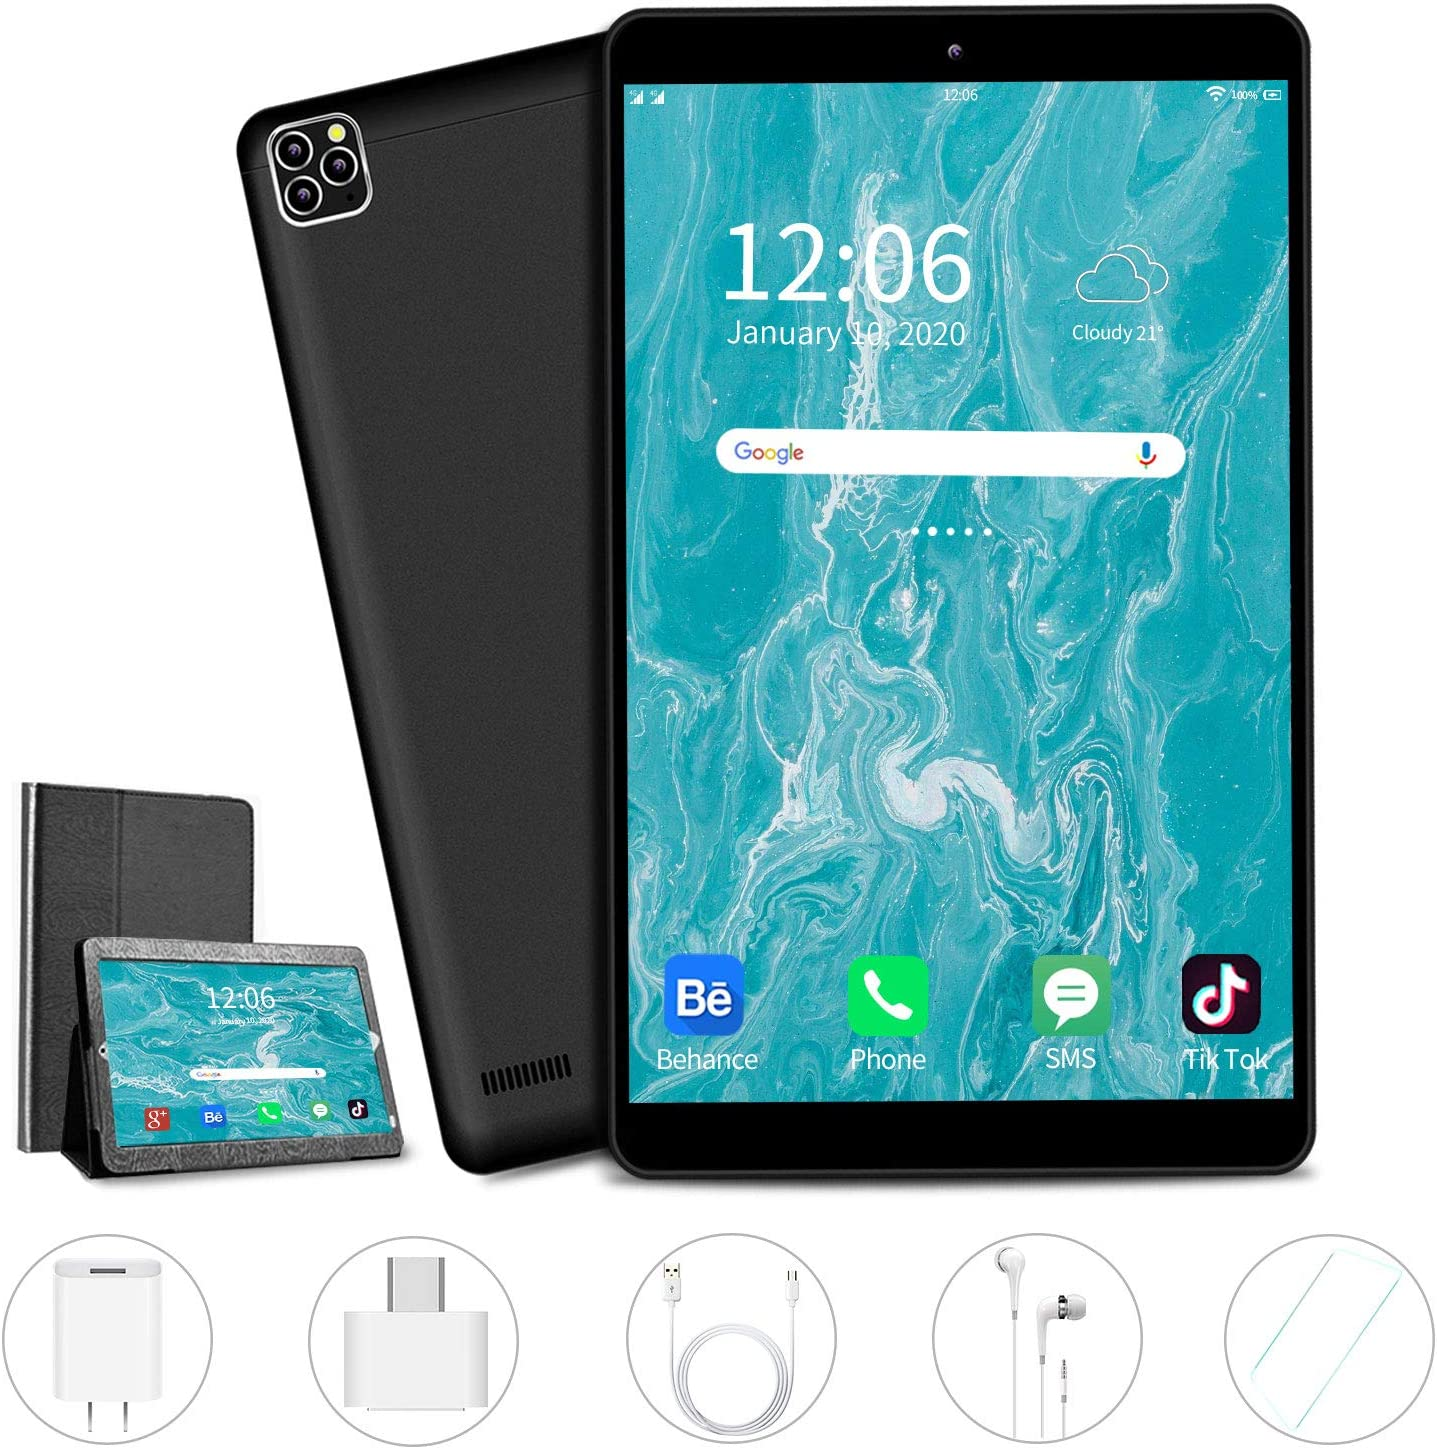 AOYODKG Tablet, 10 inch Android Tablet with 32 GB/128GB, Dual 4G SIM, 8000mAh Battery, Quad Core 3GB RAM, Bluetooth, WiFi, Android 9.0 Pie Tablet(2020 Latest)